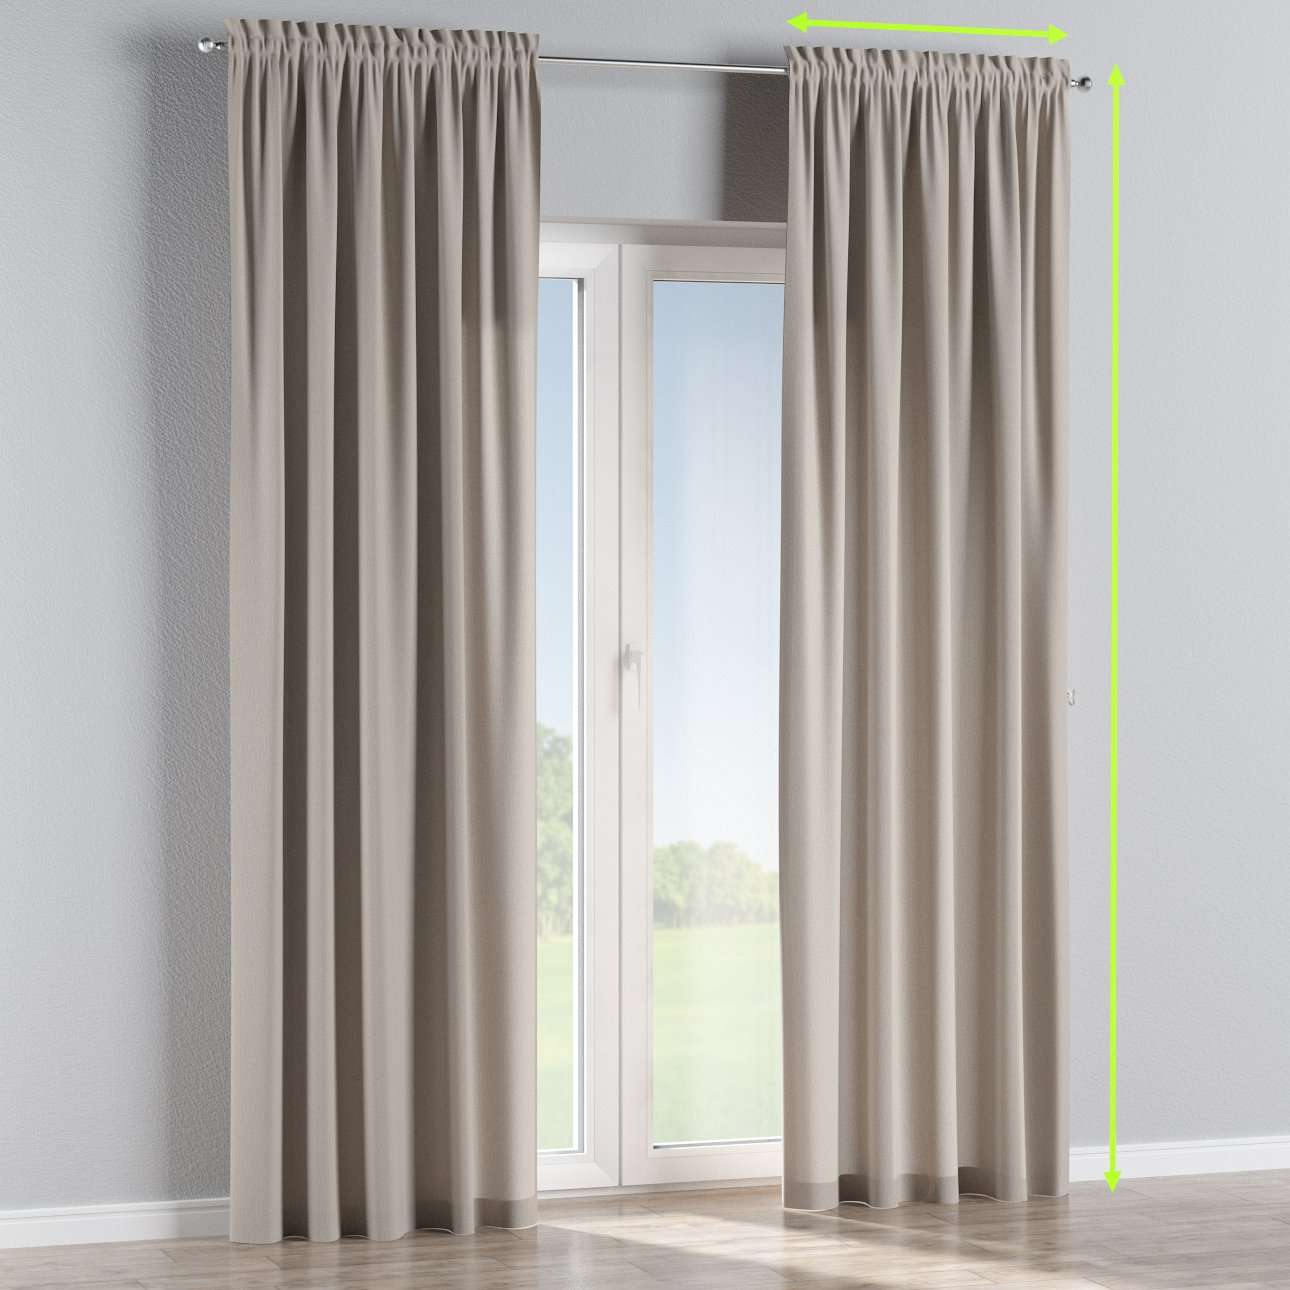 Slot and frill lined curtains in collection Chenille, fabric: 702-23